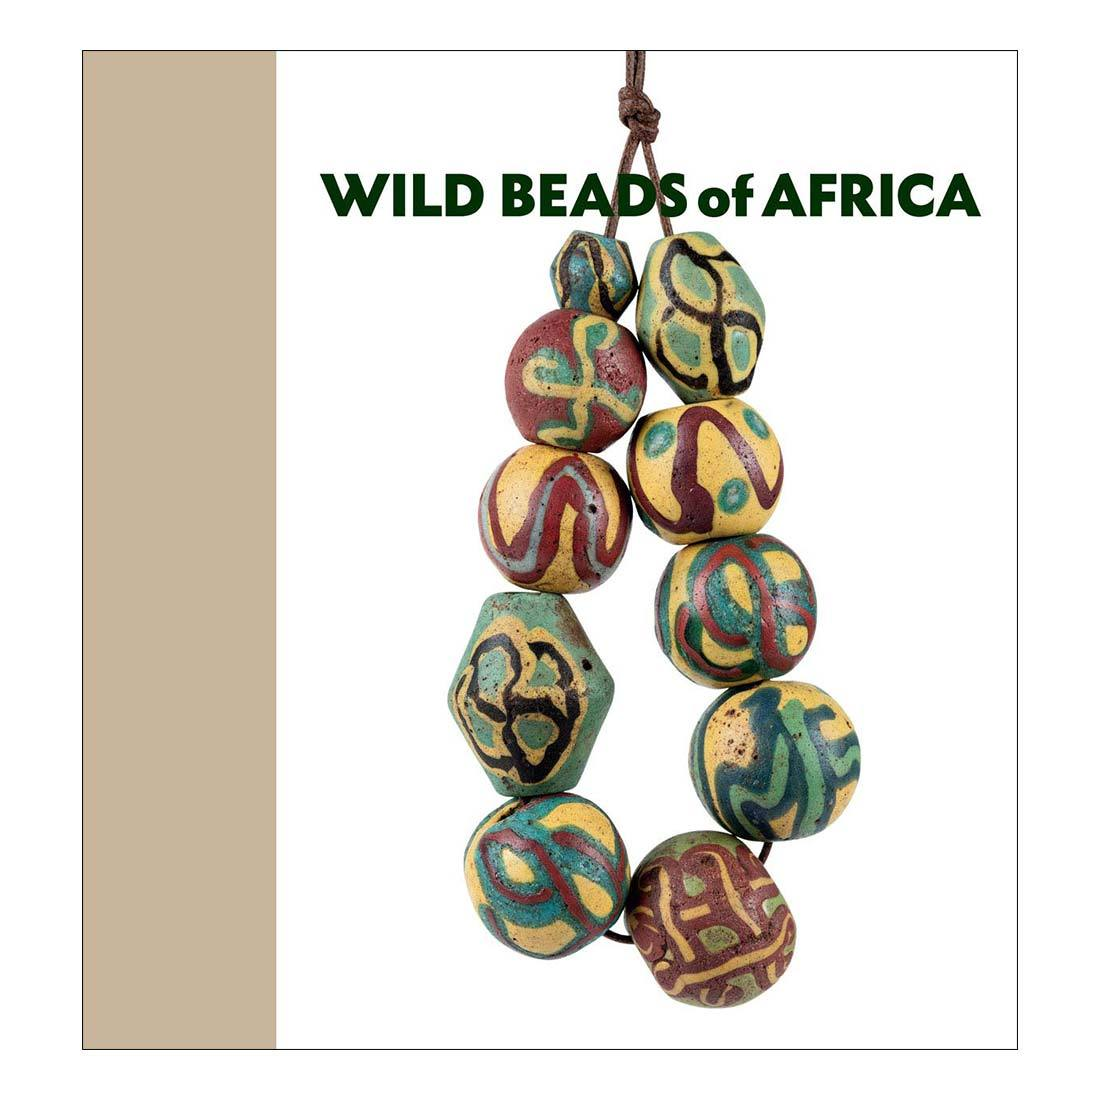 Wild Beads of Africa: Old Powderglass Beads from the Collection of Billy Steinberg